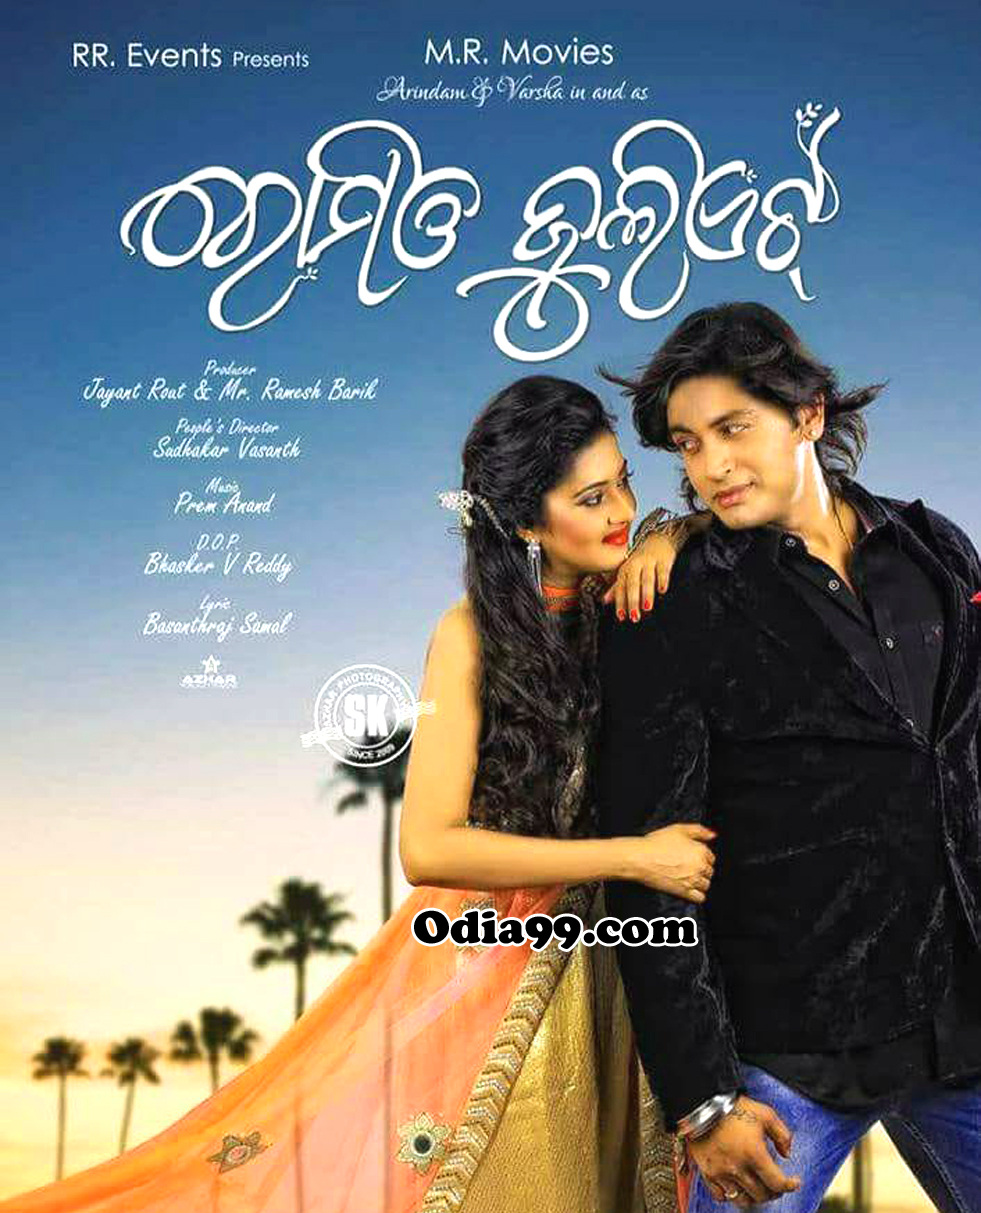 Romeo Juliet Odia Movie Hd Video Songs,Poster,Cast,Crew,Release Date-3295